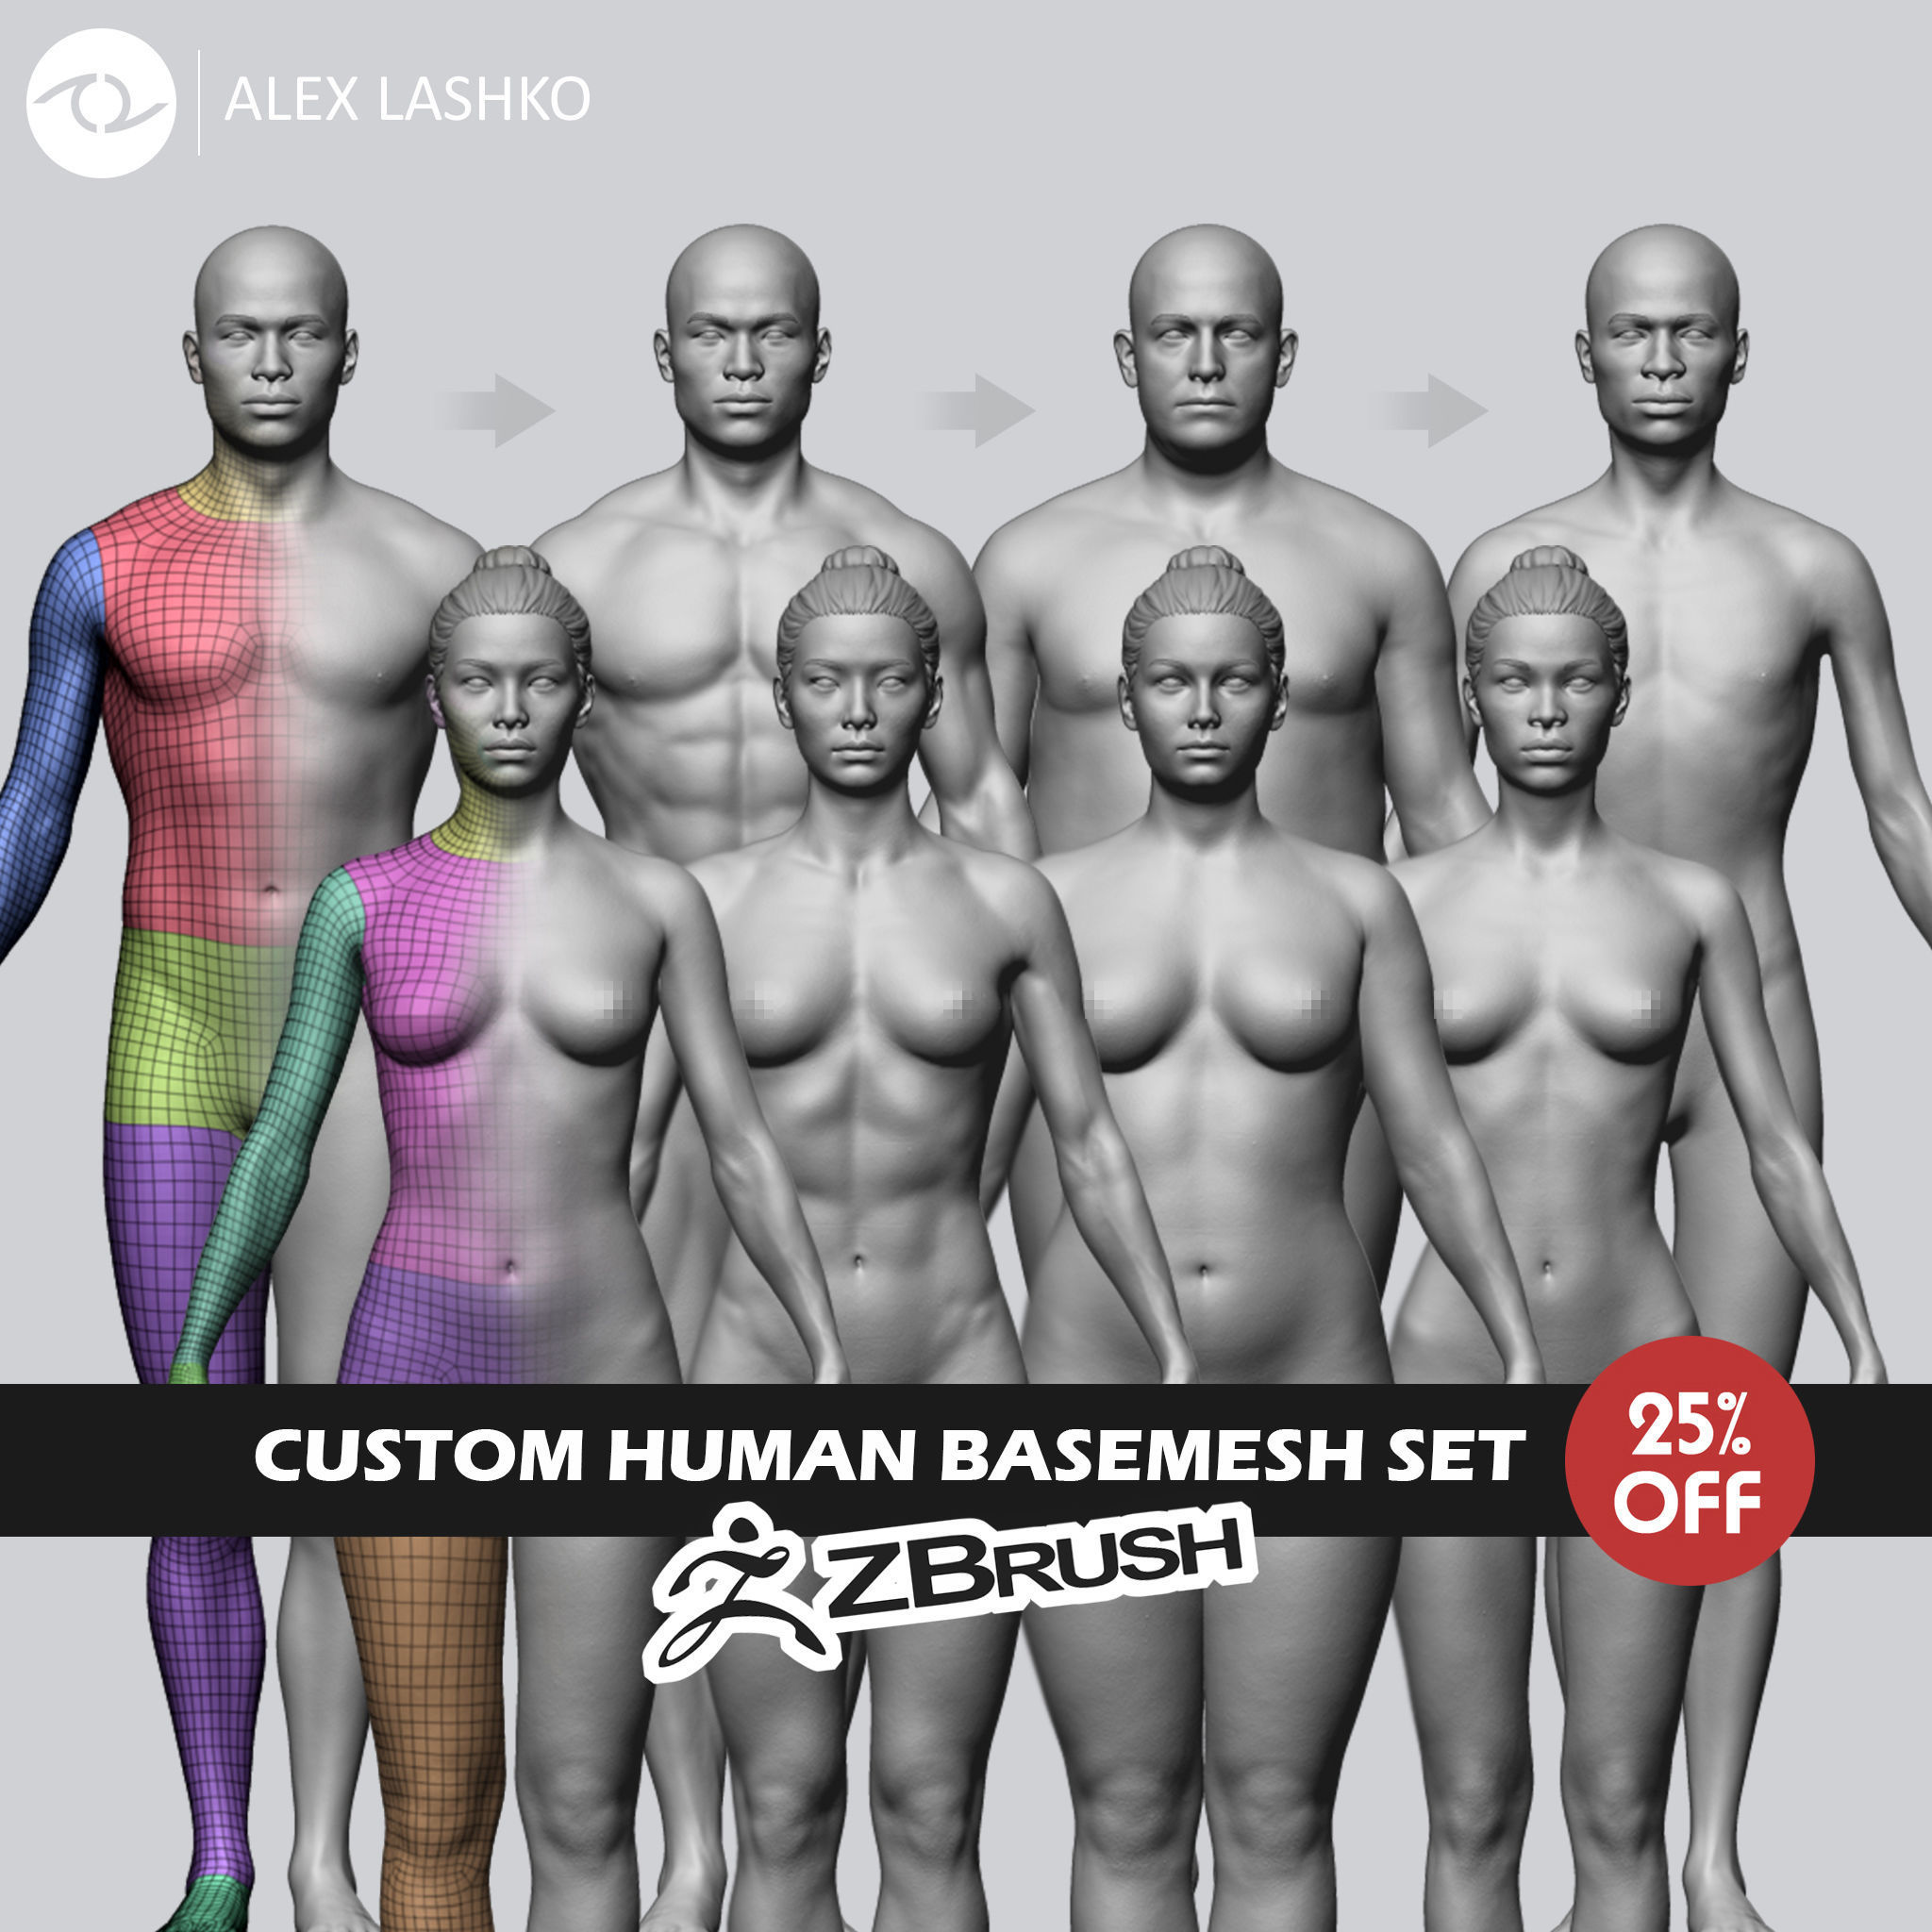 Custom Human Basemesh Set